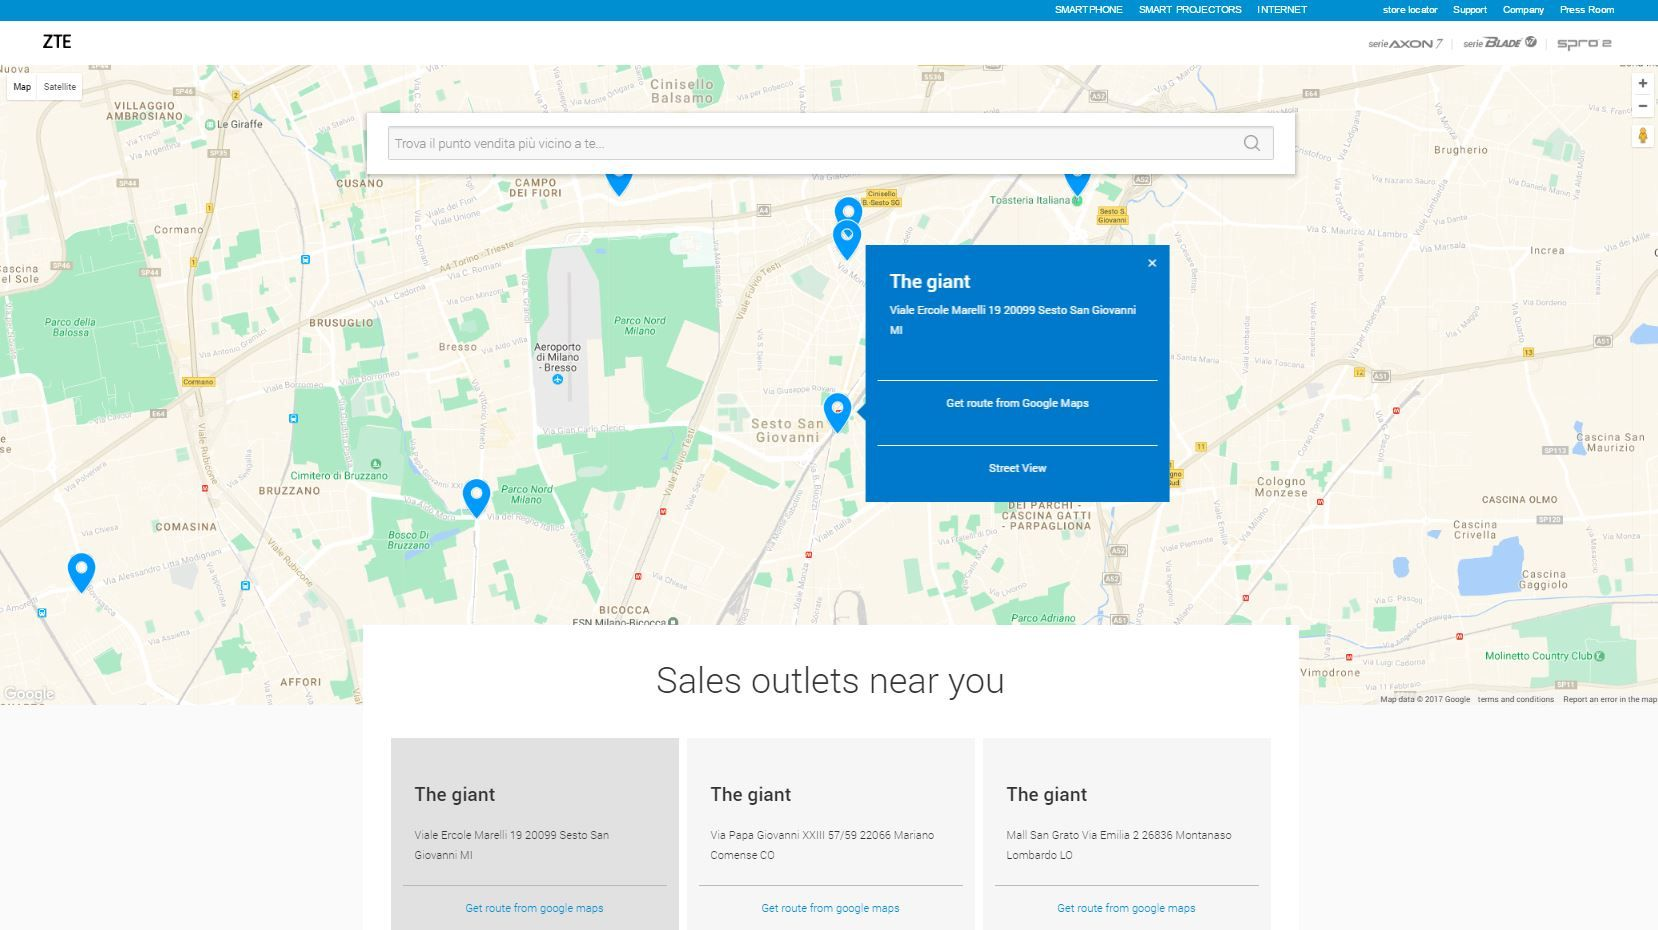 Store Finder Find Zte Sales Outlets Near Your Area Http Ztedevices It Store